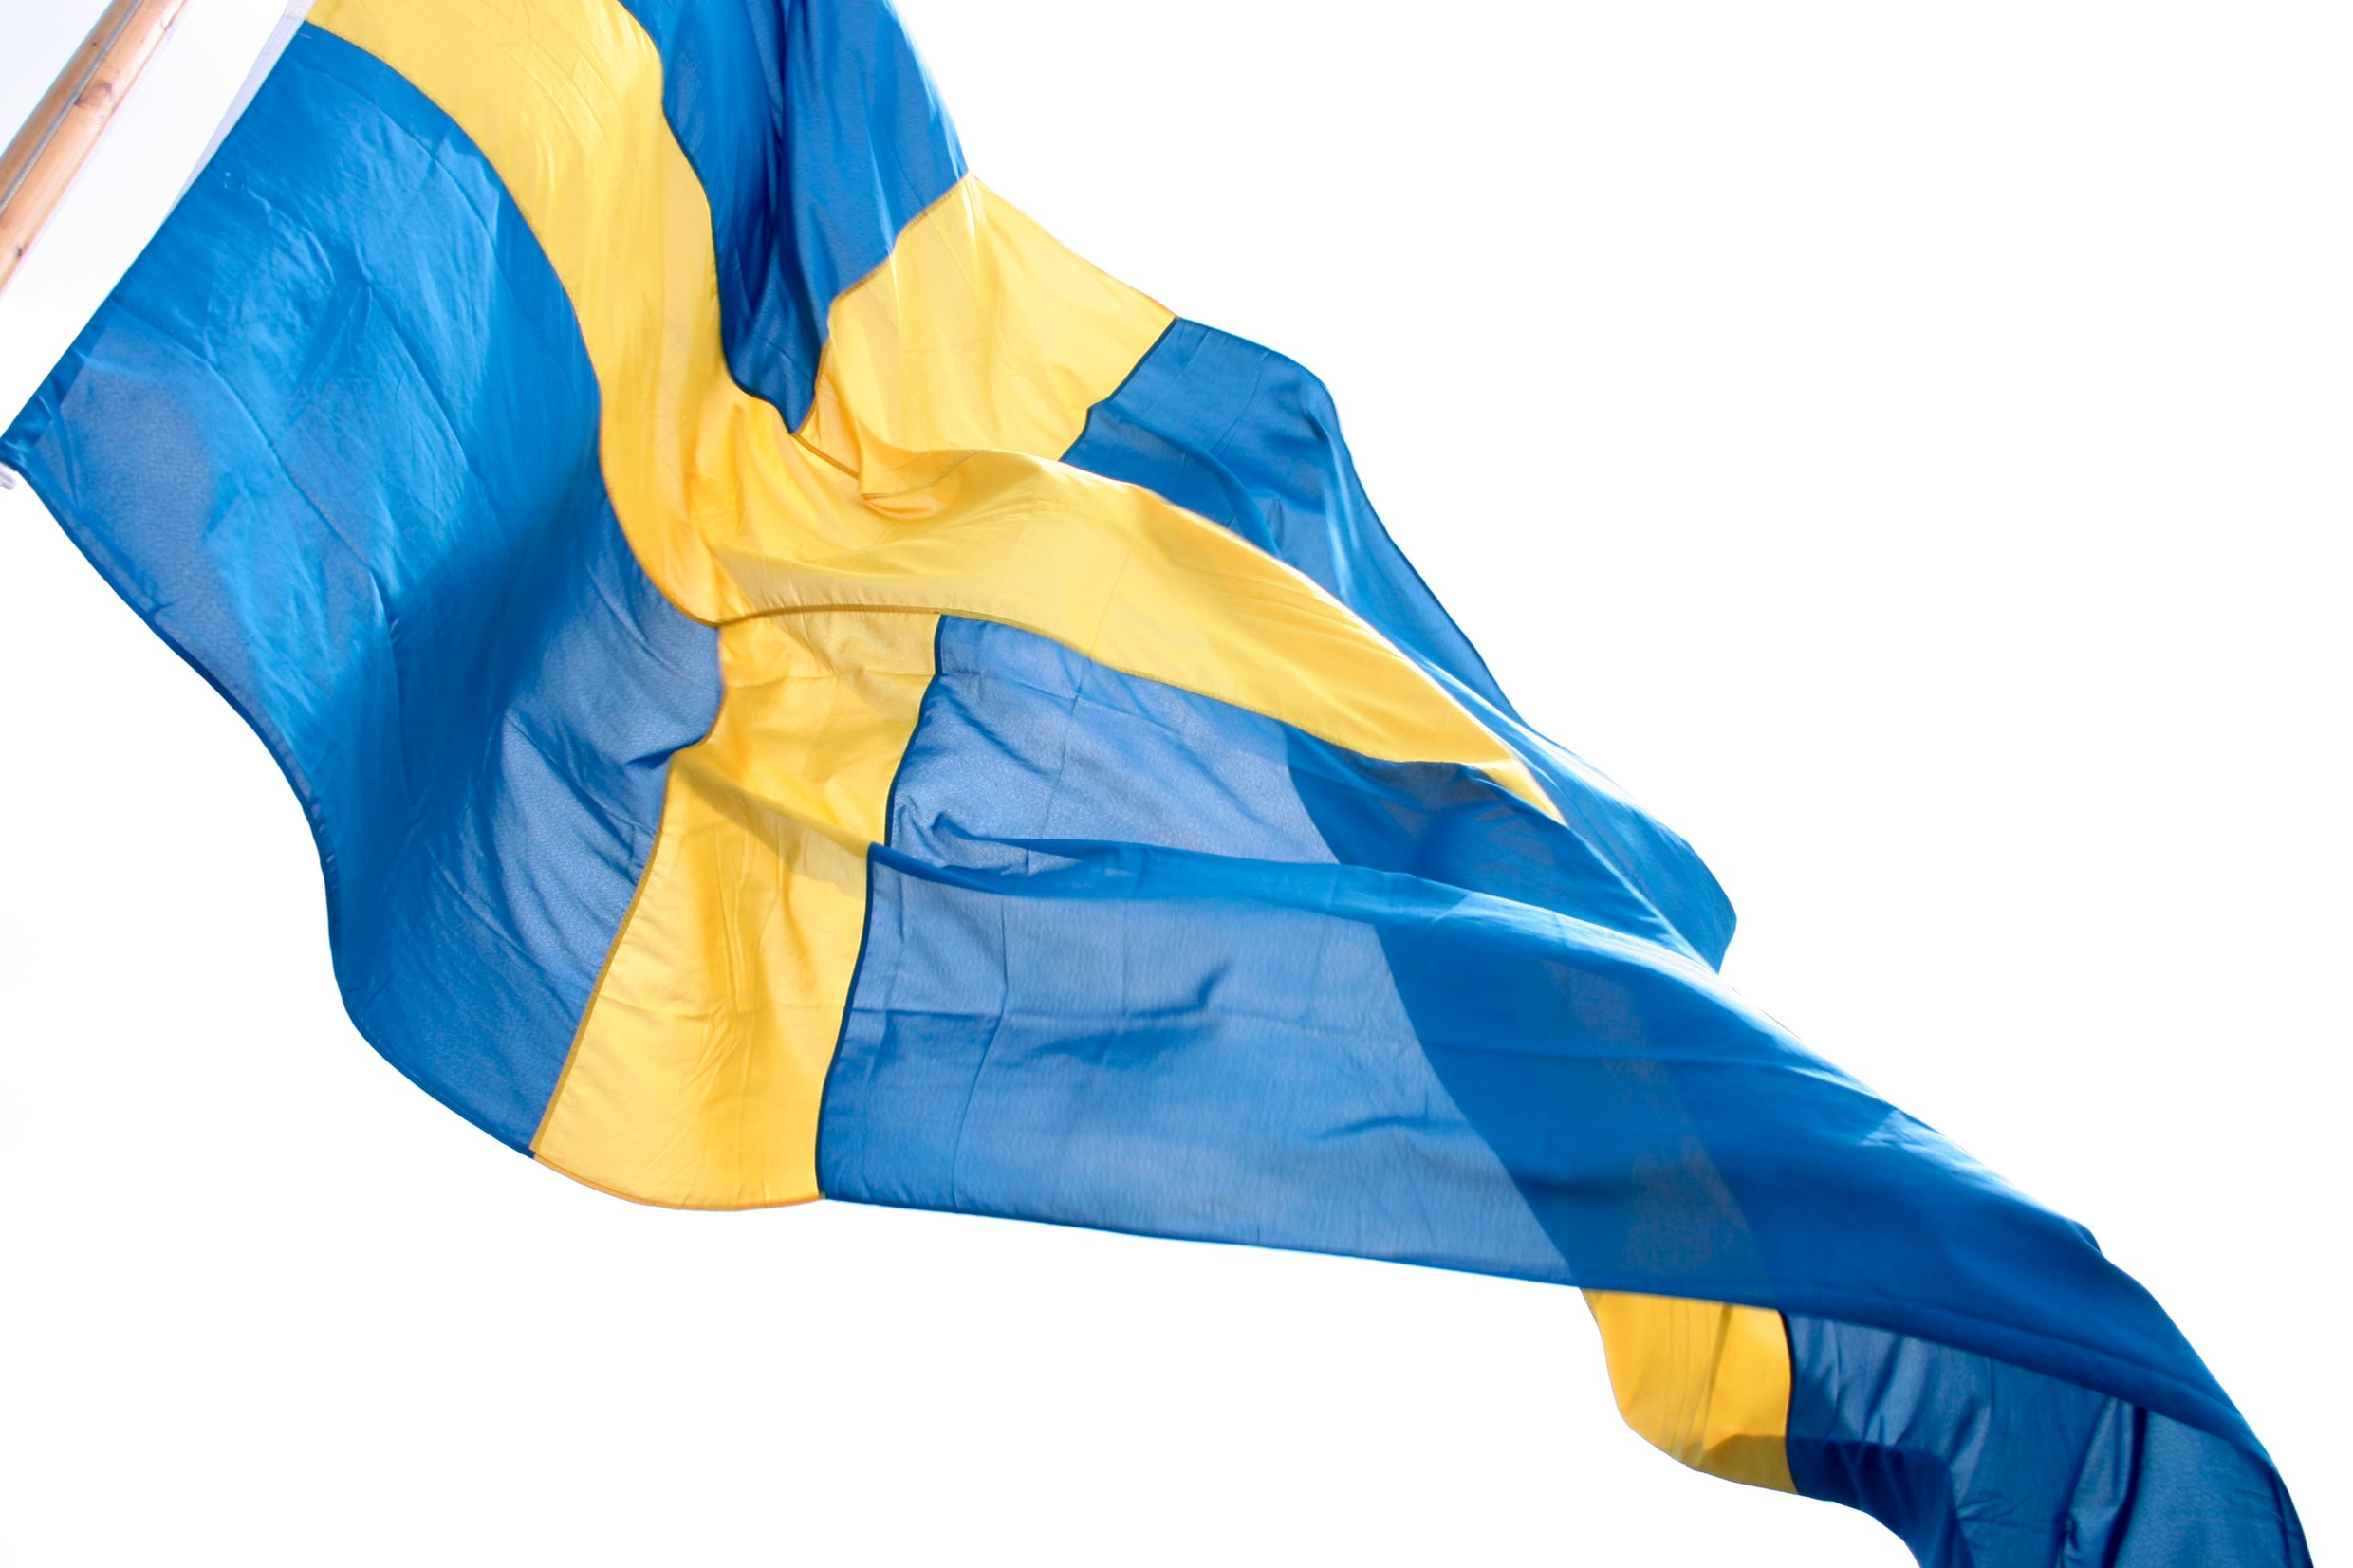 Sweden Is Upgrading to Private Healthcare